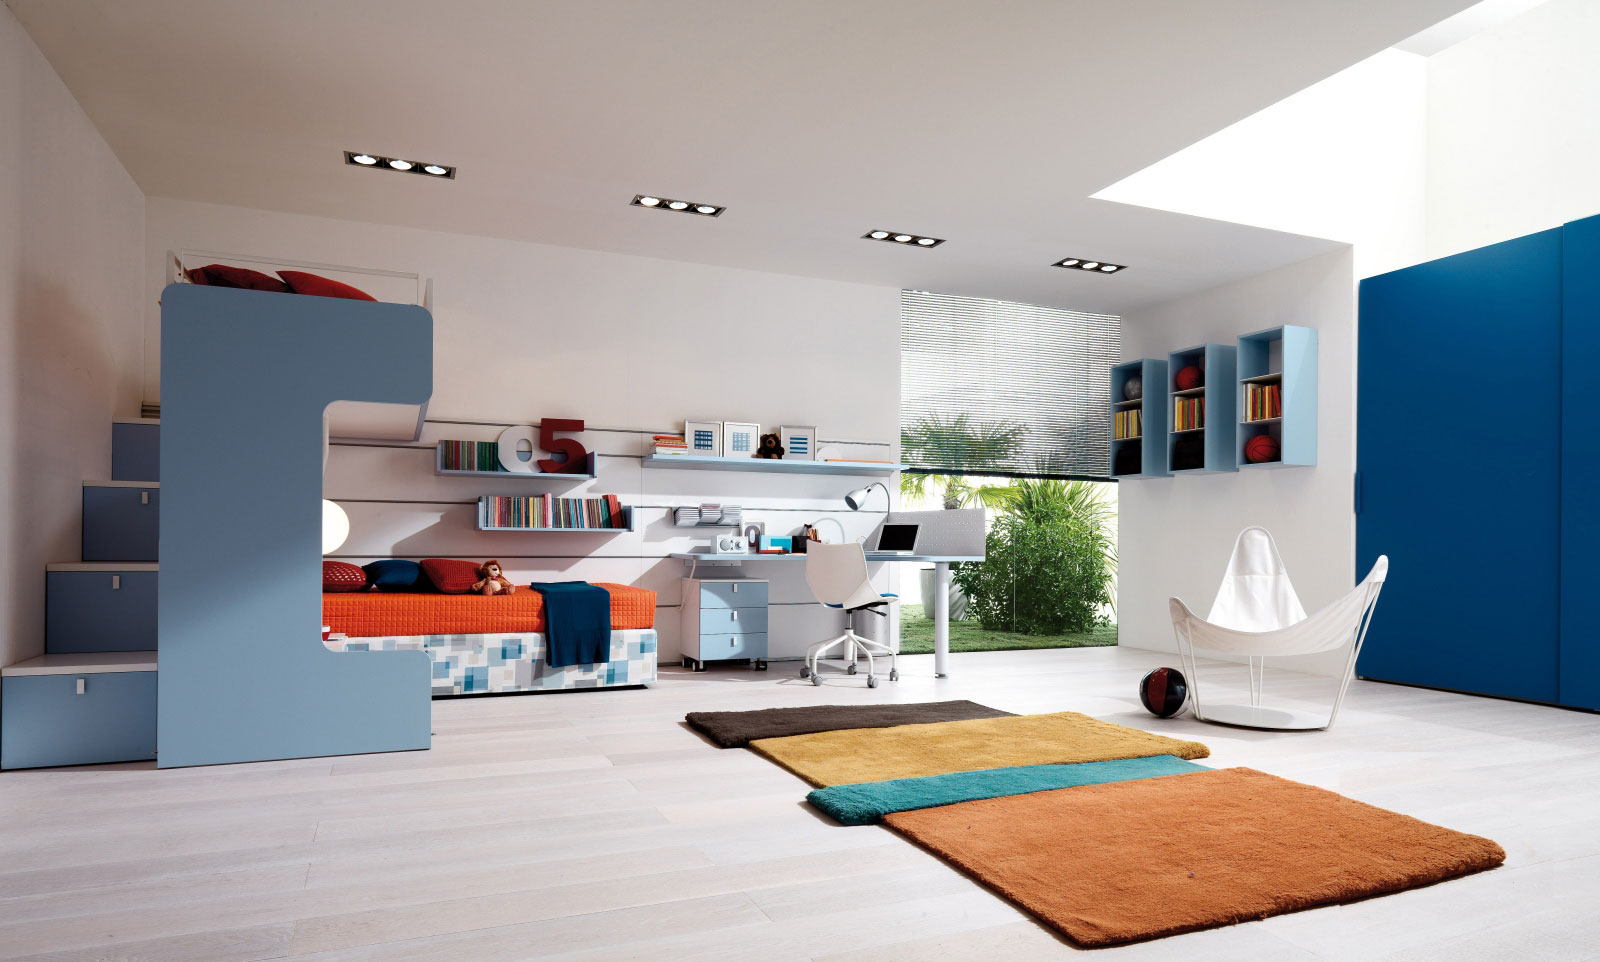 Stunning Cool Rooms For Kids Gallery Ideas cool kids rooms